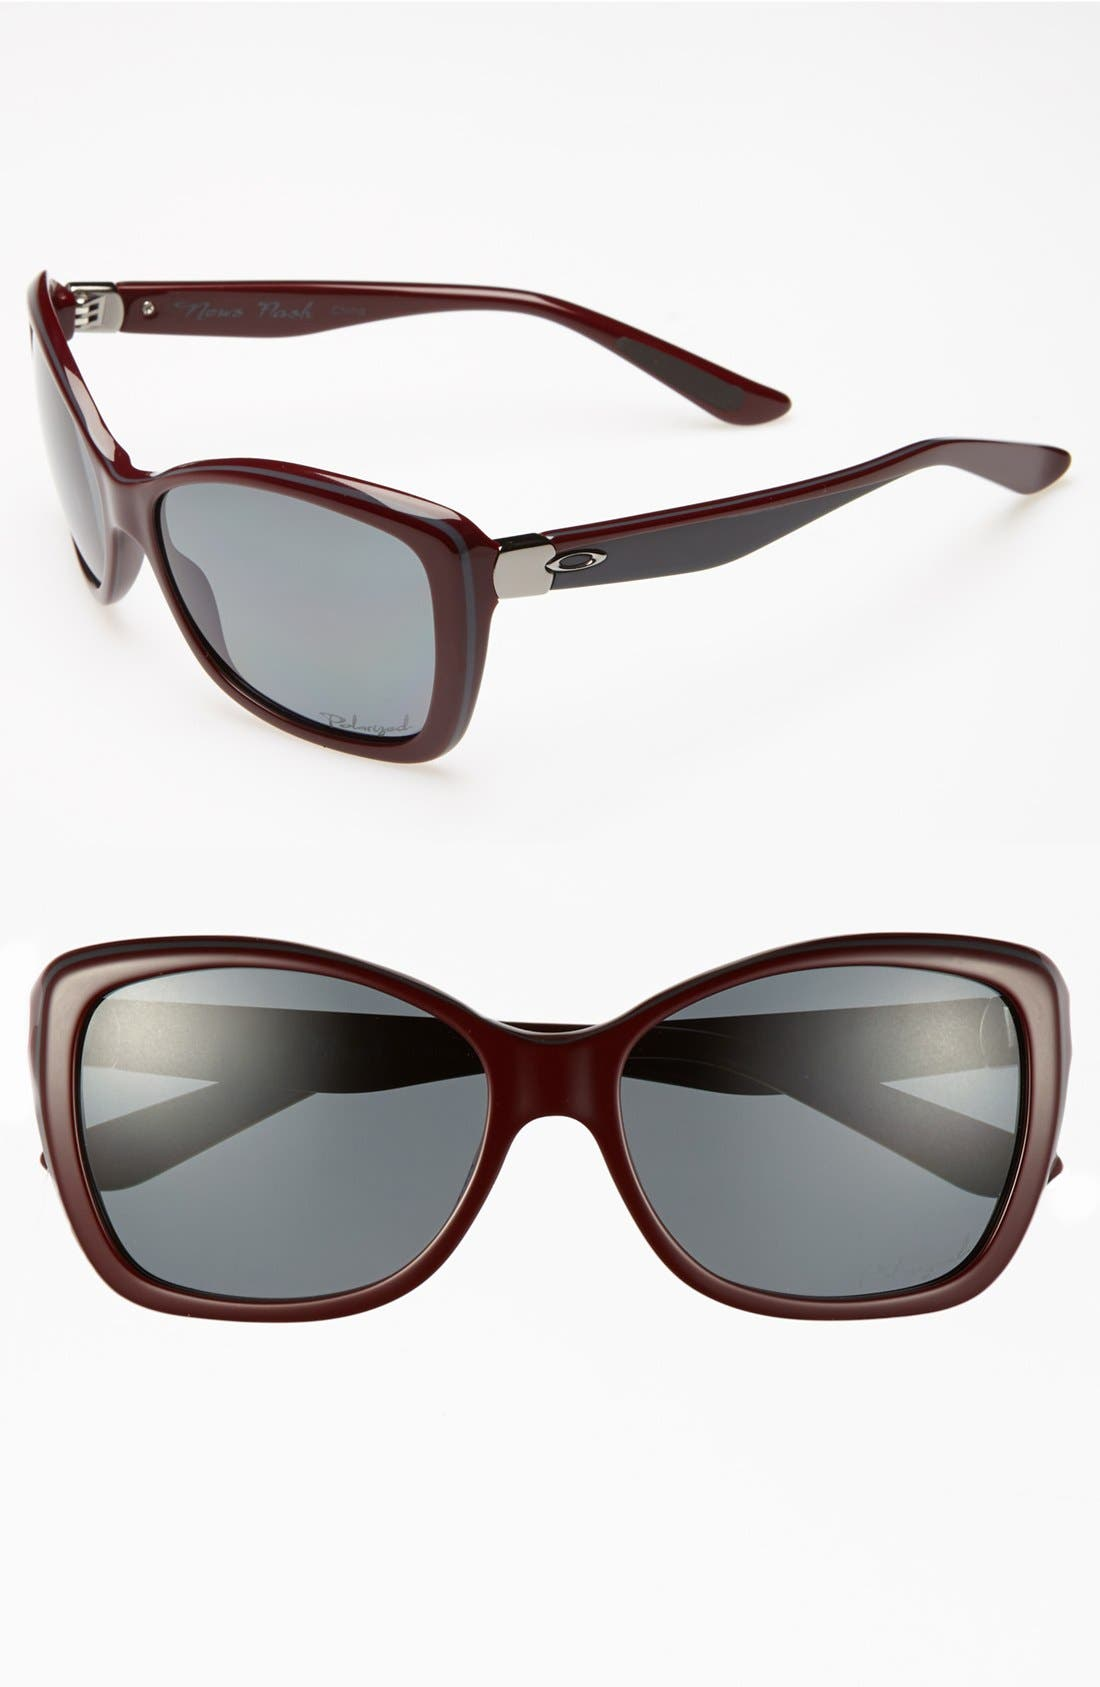 Main Image - Oakley 'News Flash' 56mm Polarized Sunglasses